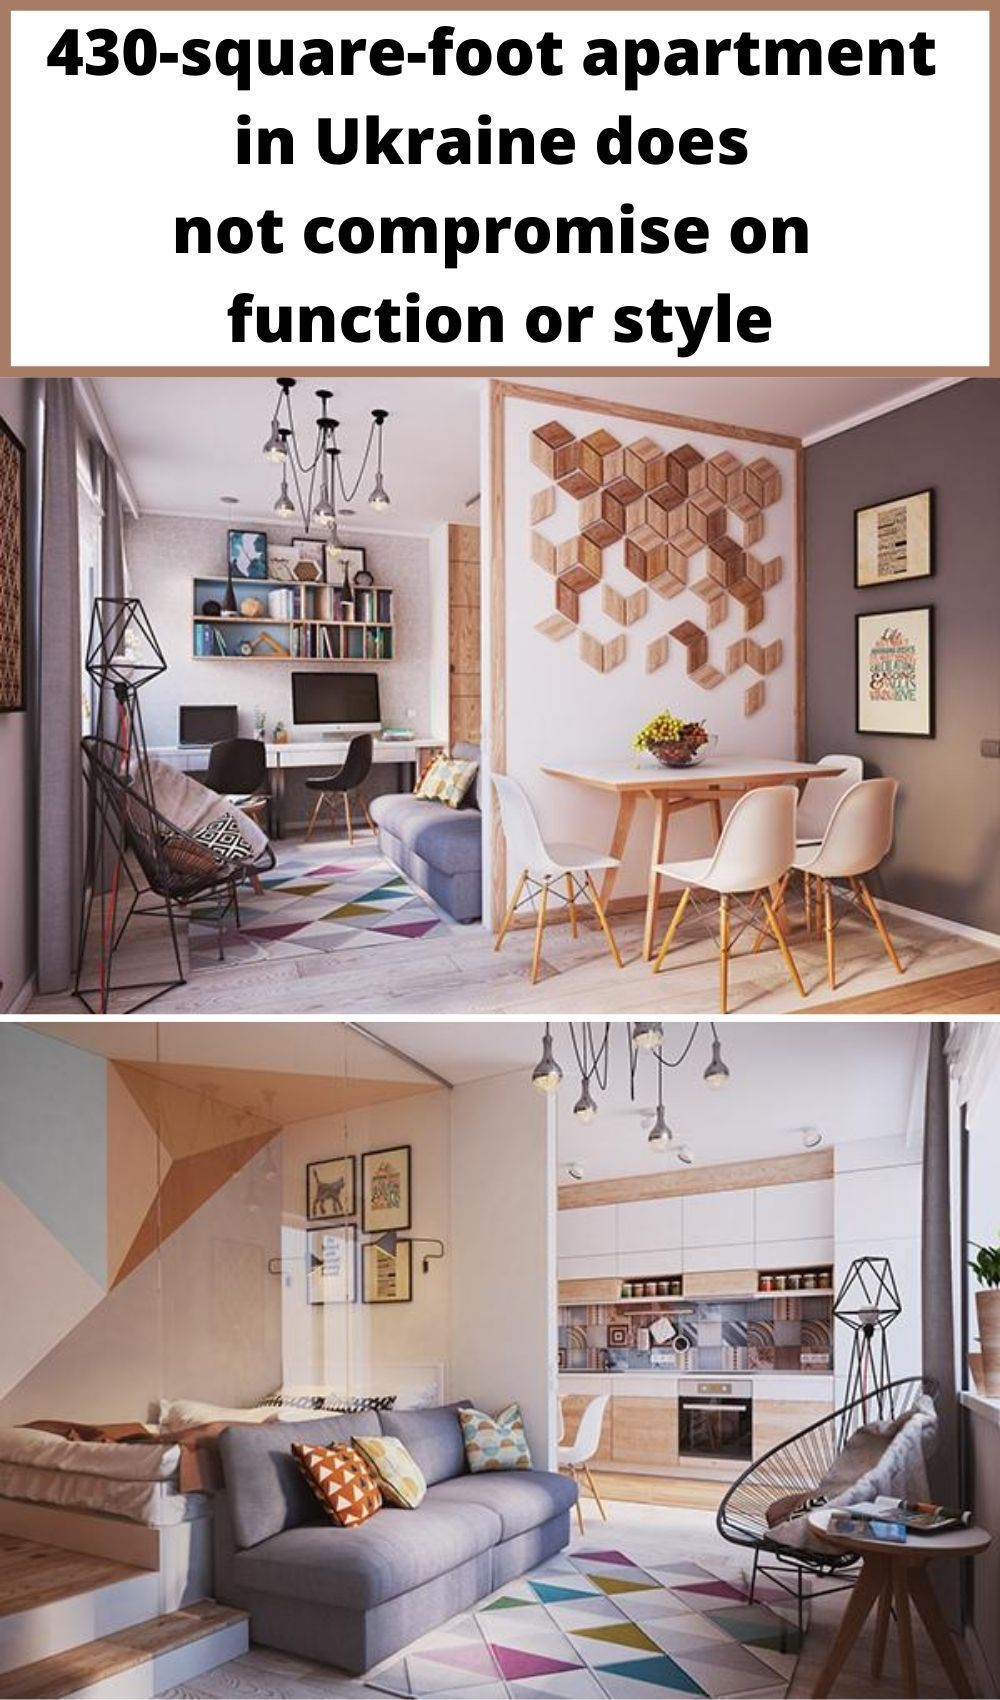 430 Square Foot Apartment In Ukraine Does Not Compromise On Function Or Style In 2020 Small Apartment Interior Interior Design Apartment Small Small Apartment Design